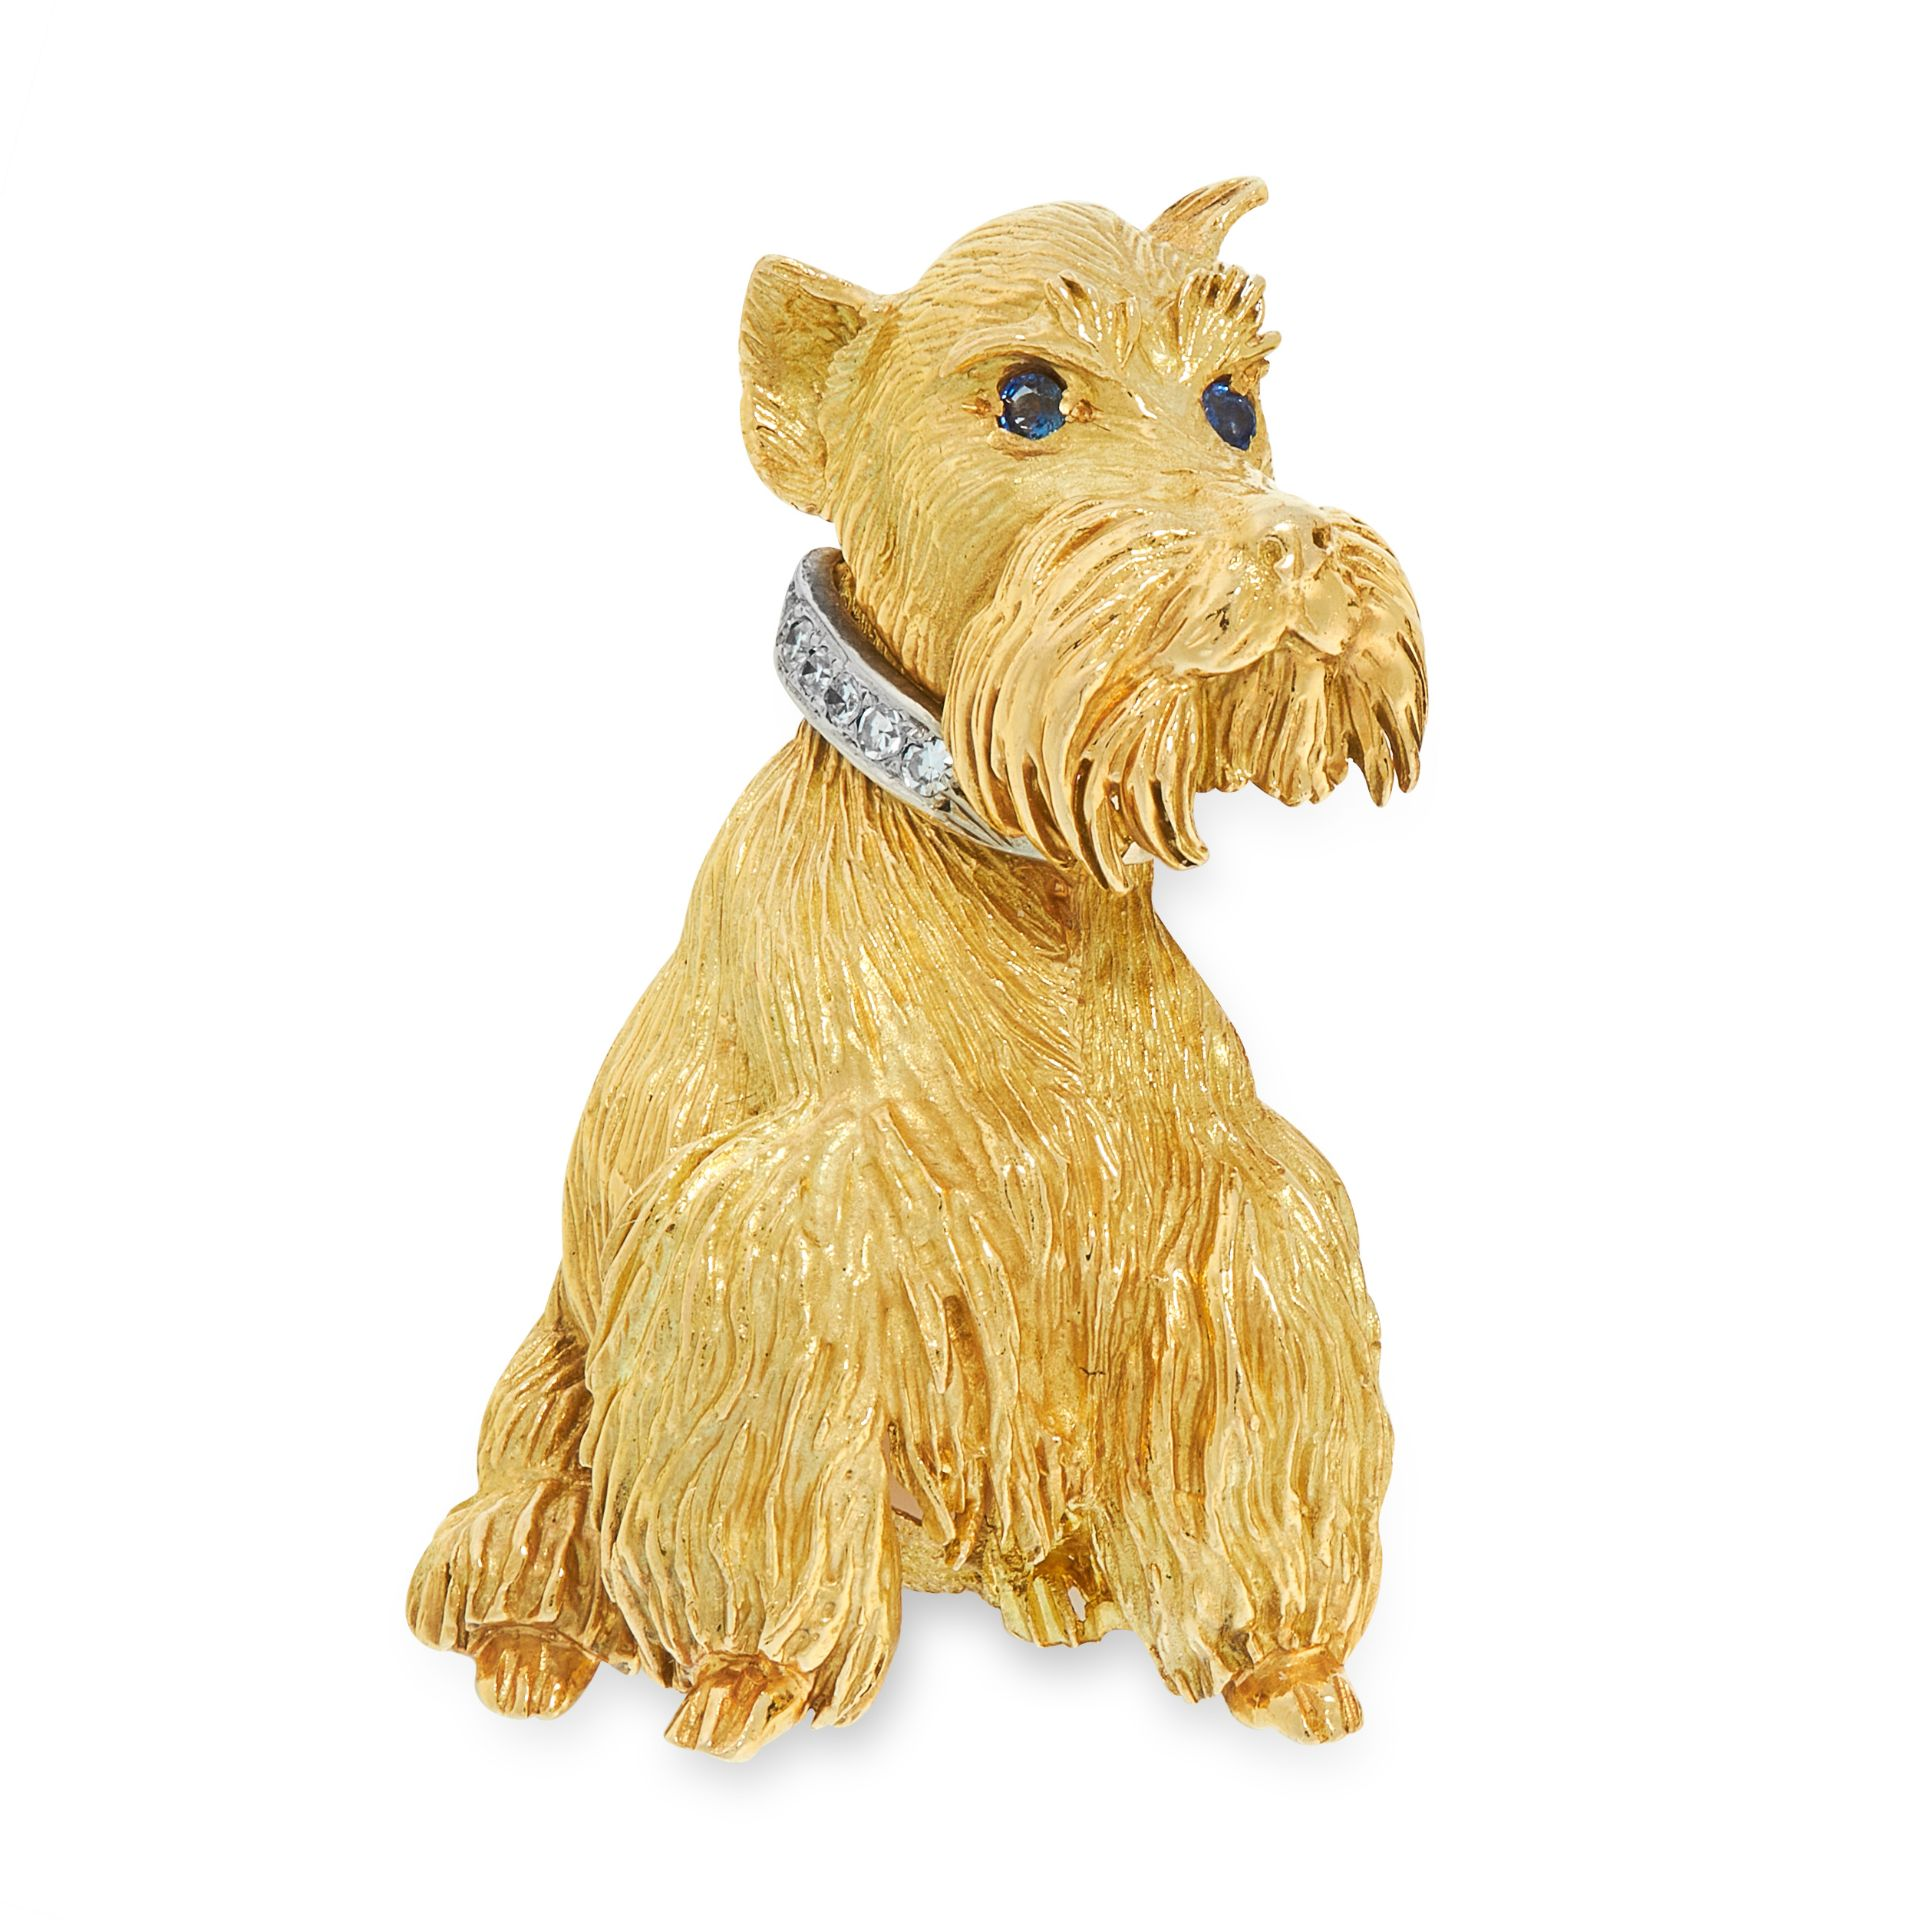 A SAPPHIRE AND DIAMOND DOG BROOCH signed Cartier, in 18ct yellow gold, in the form of a Scottie dog,